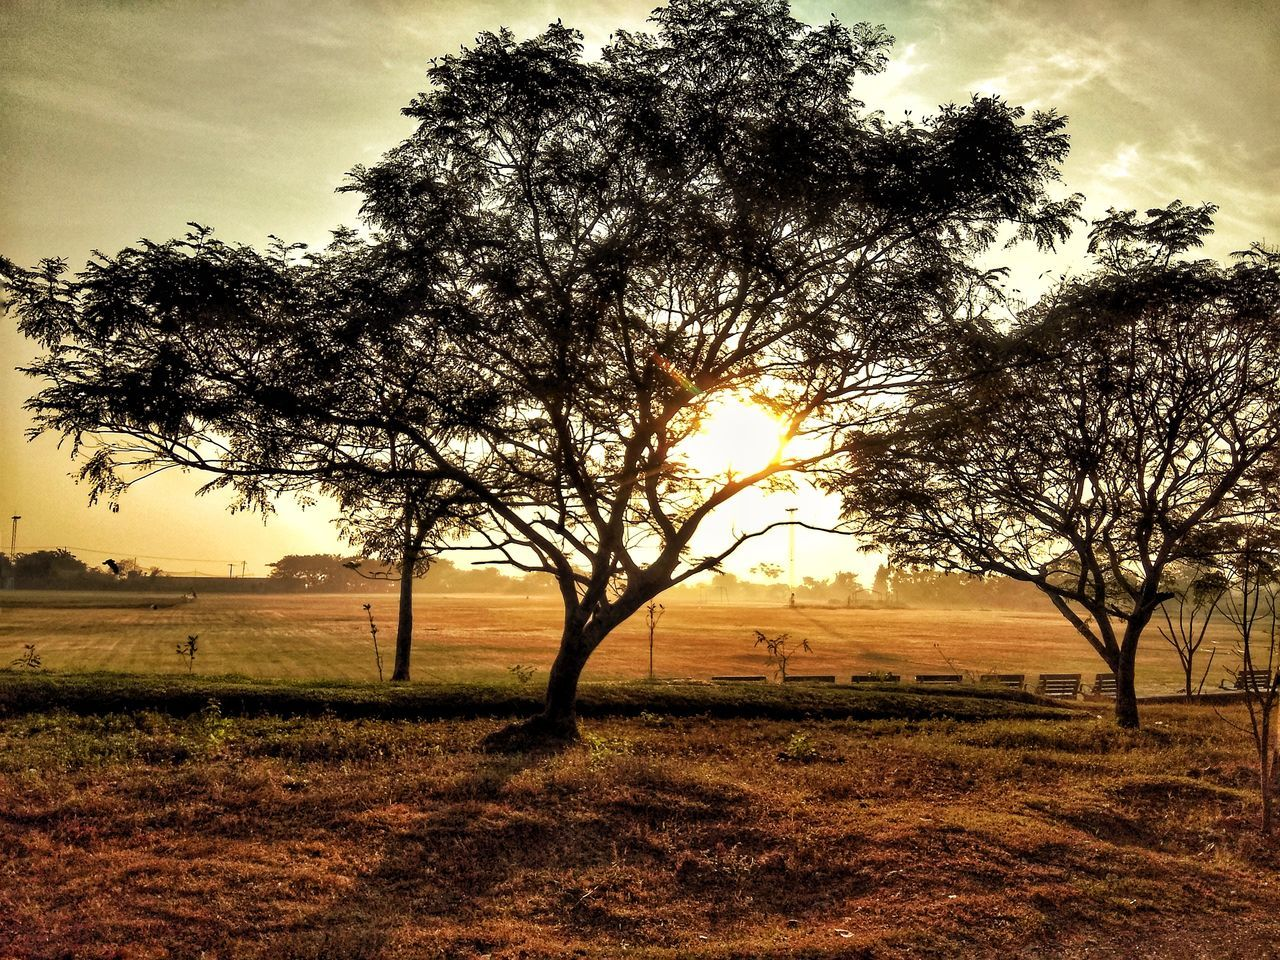 tree, field, tranquility, landscape, beauty in nature, nature, tranquil scene, scenics, sky, lone, growth, sun, outdoors, no people, sunset, branch, tree trunk, silhouette, sunlight, bare tree, grass, day